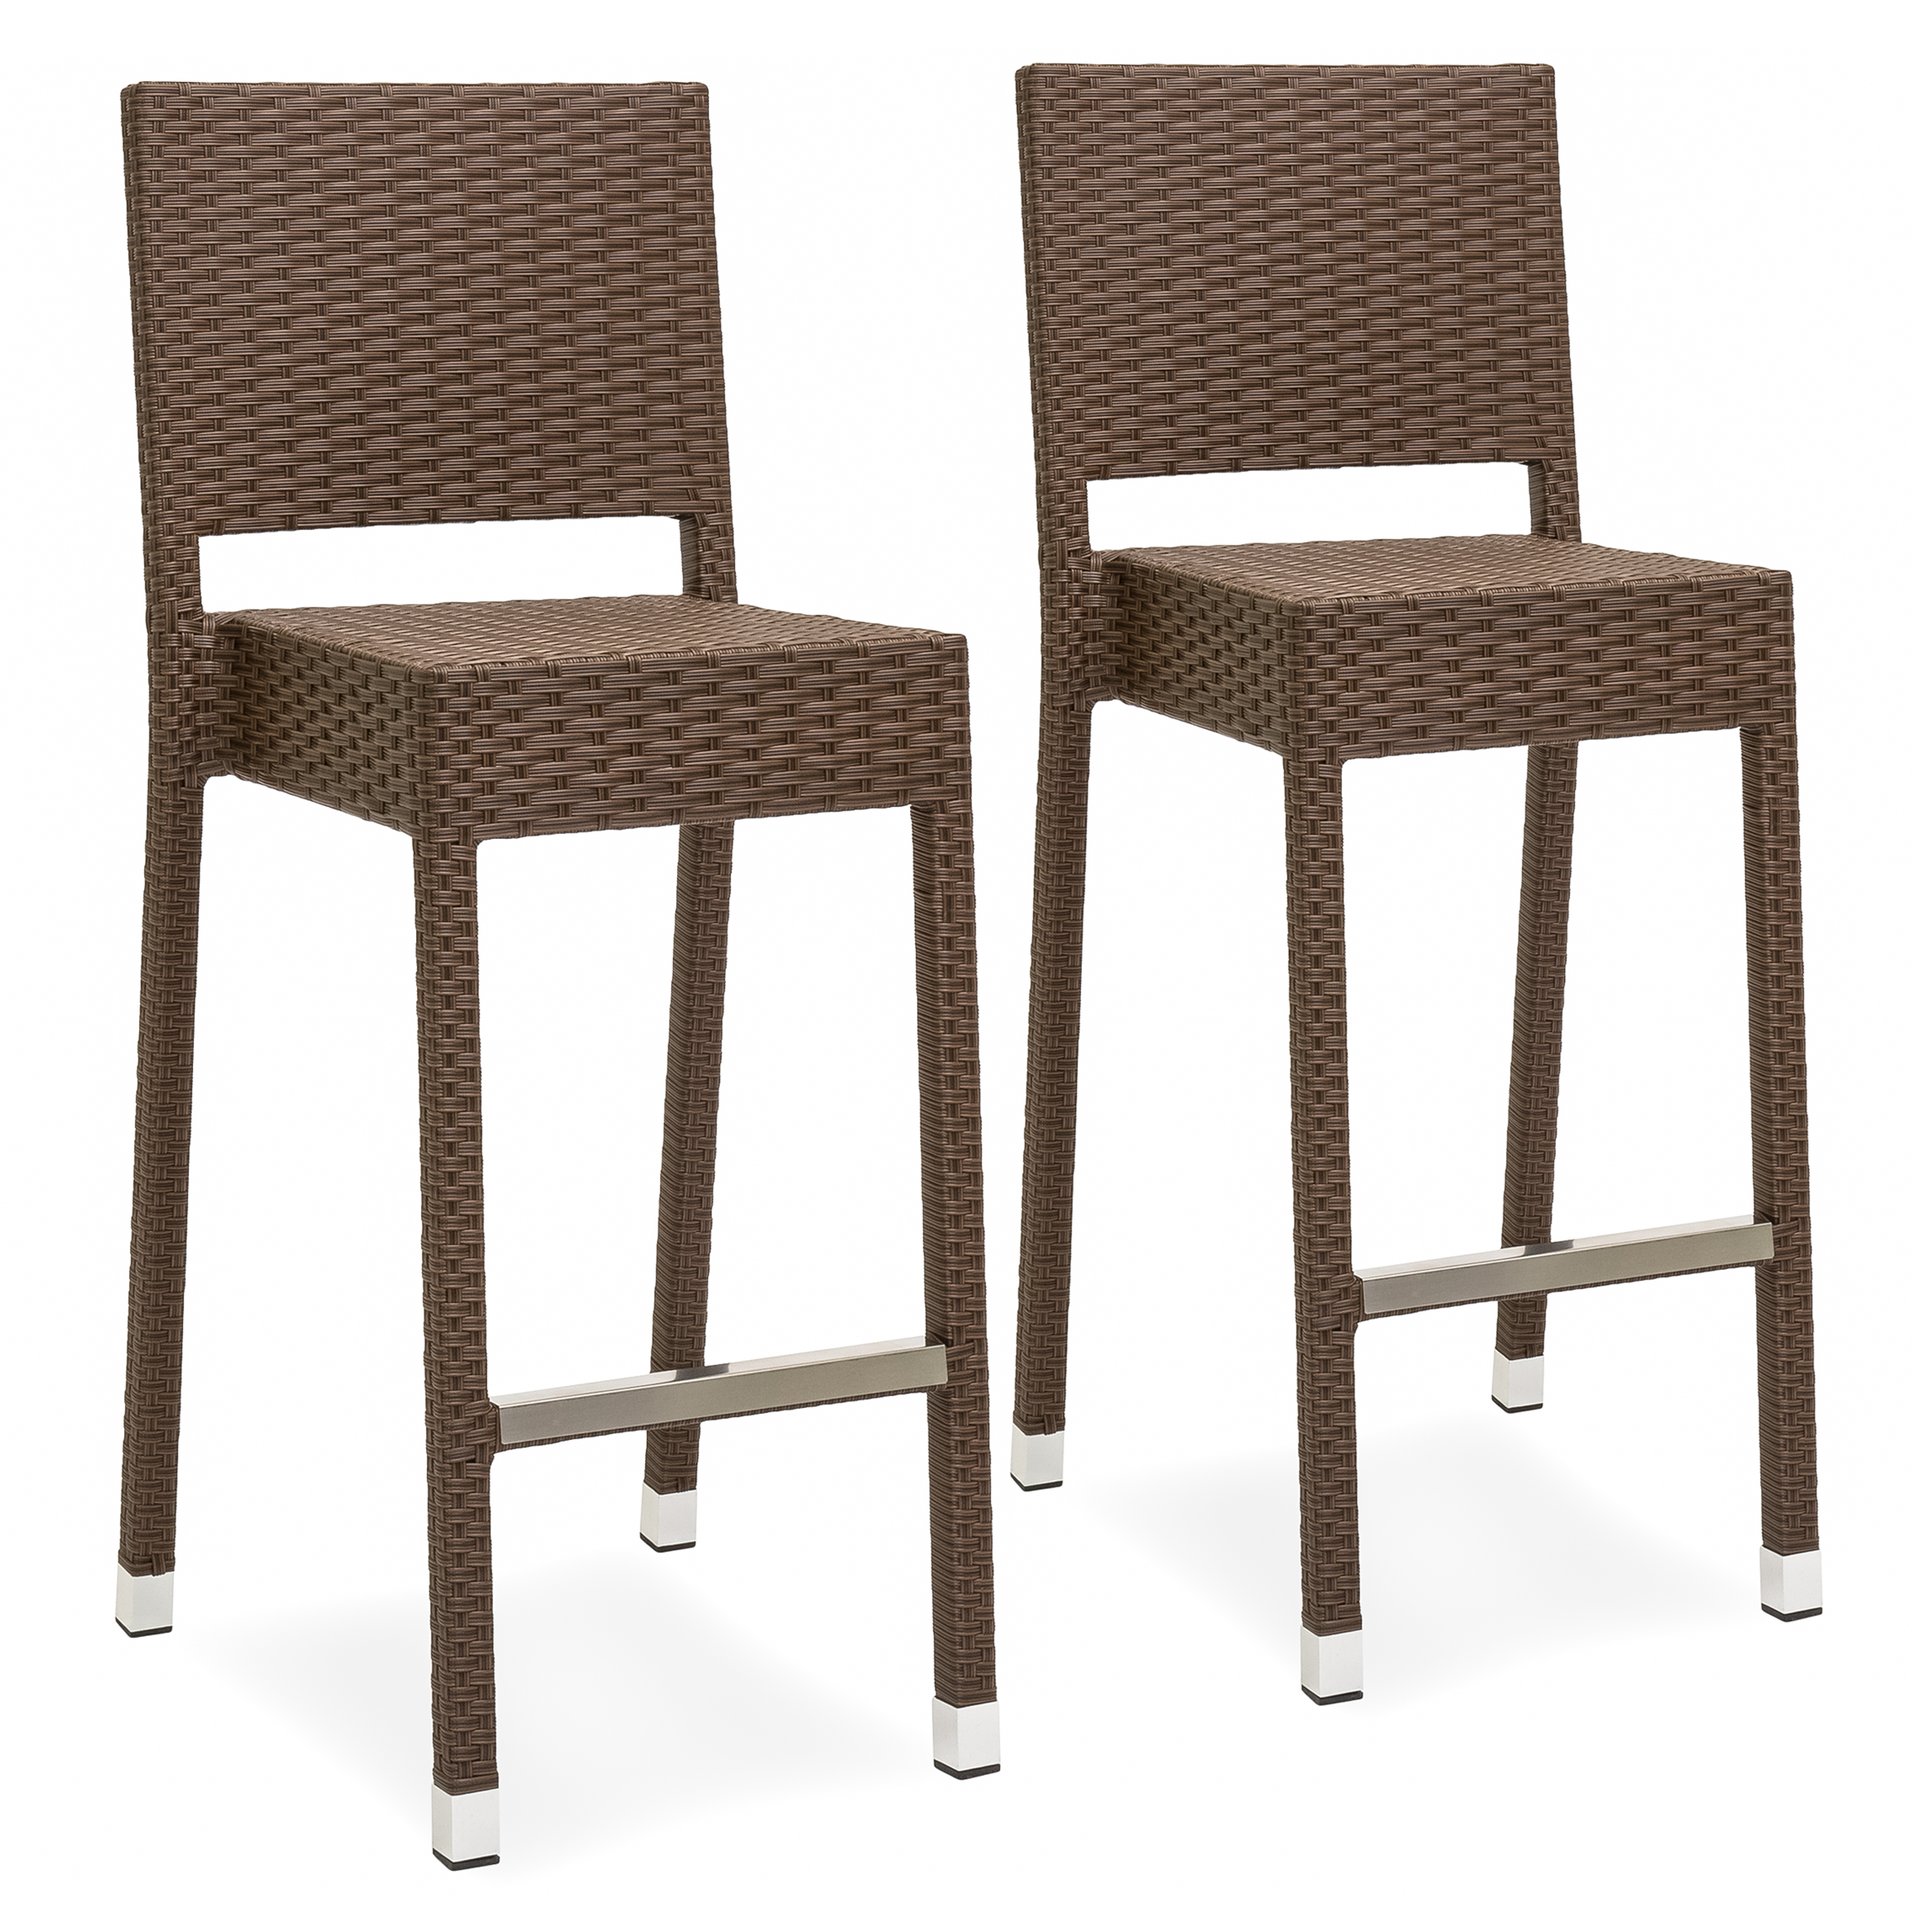 Best Choice Products Set of 2 Outdoor Wicker Bar Stools (Brown)